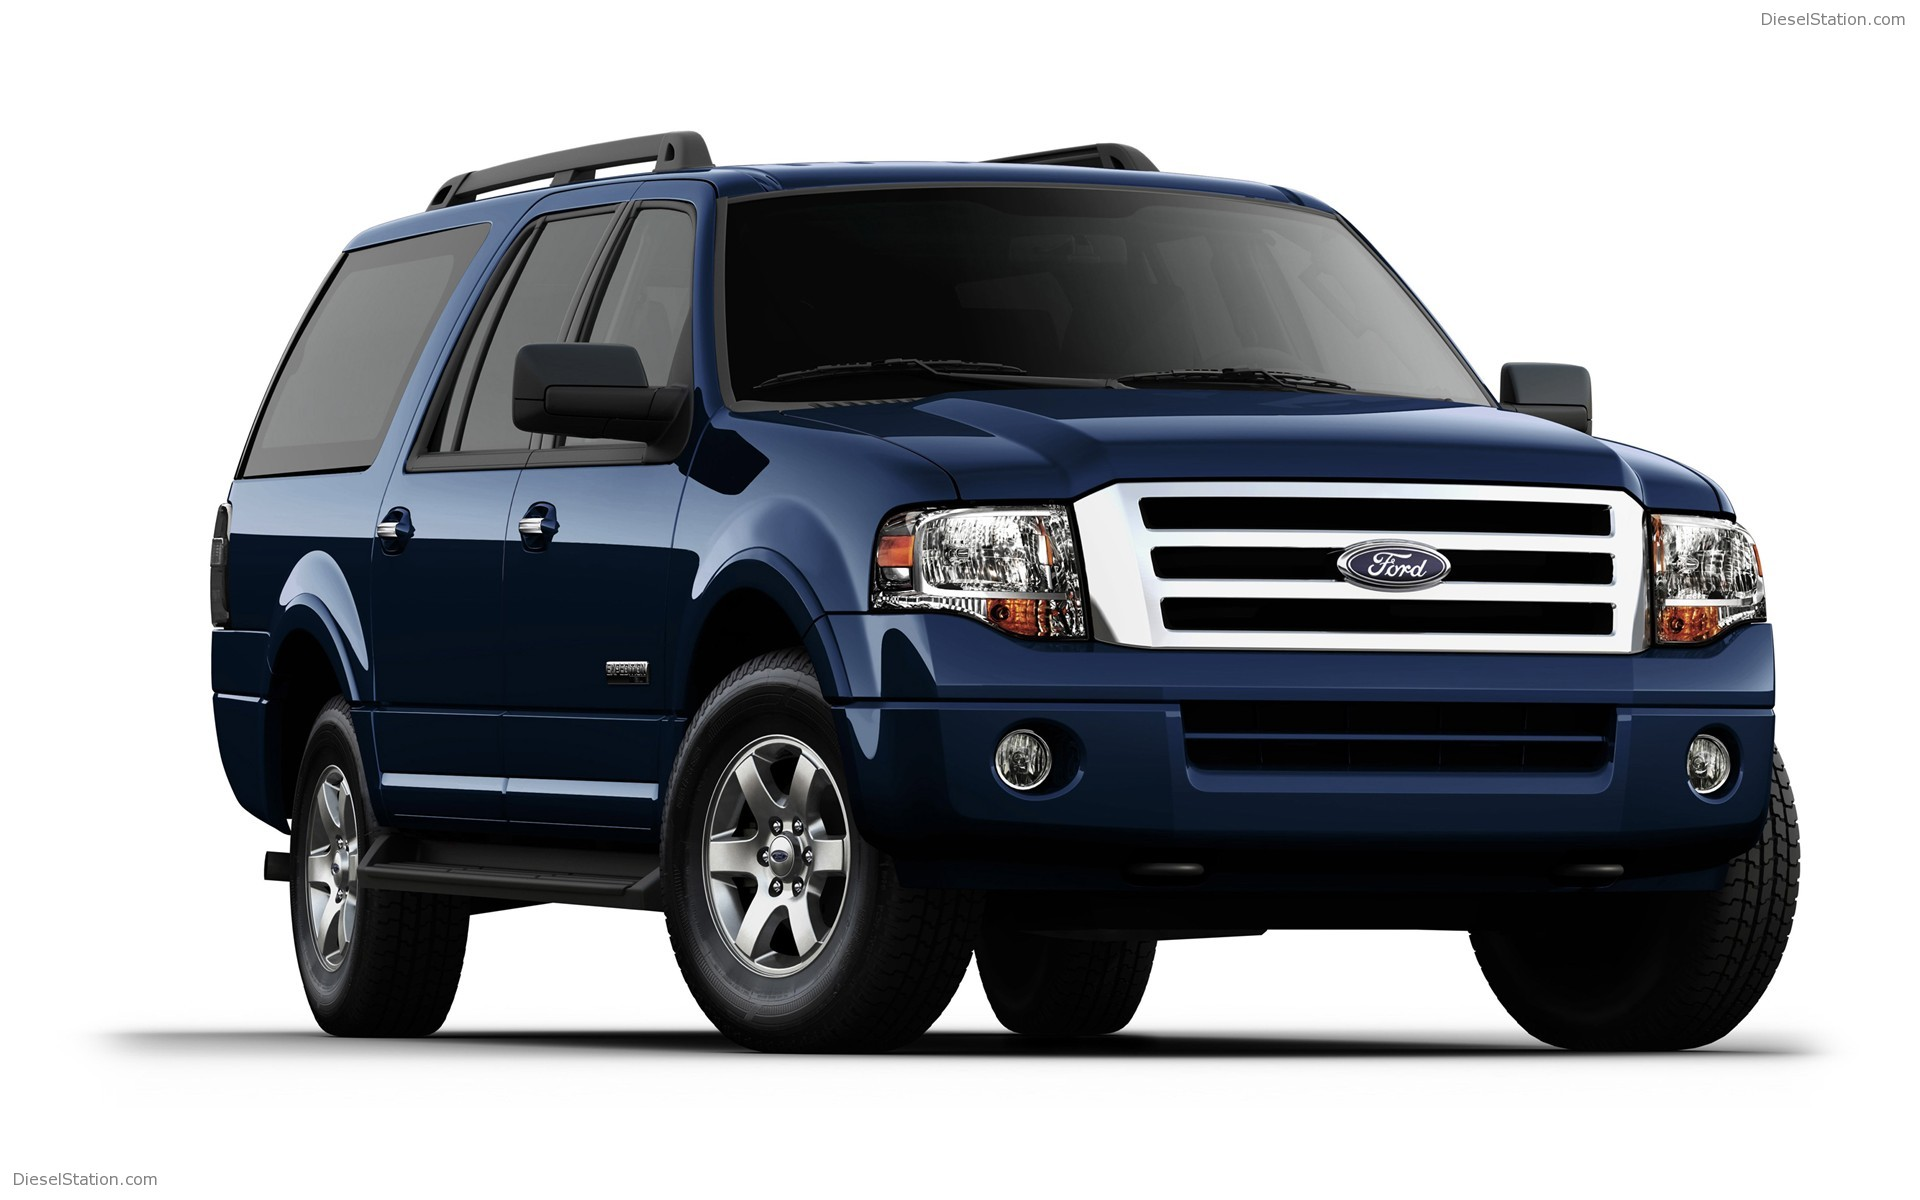 2008 Ford Expedition #17